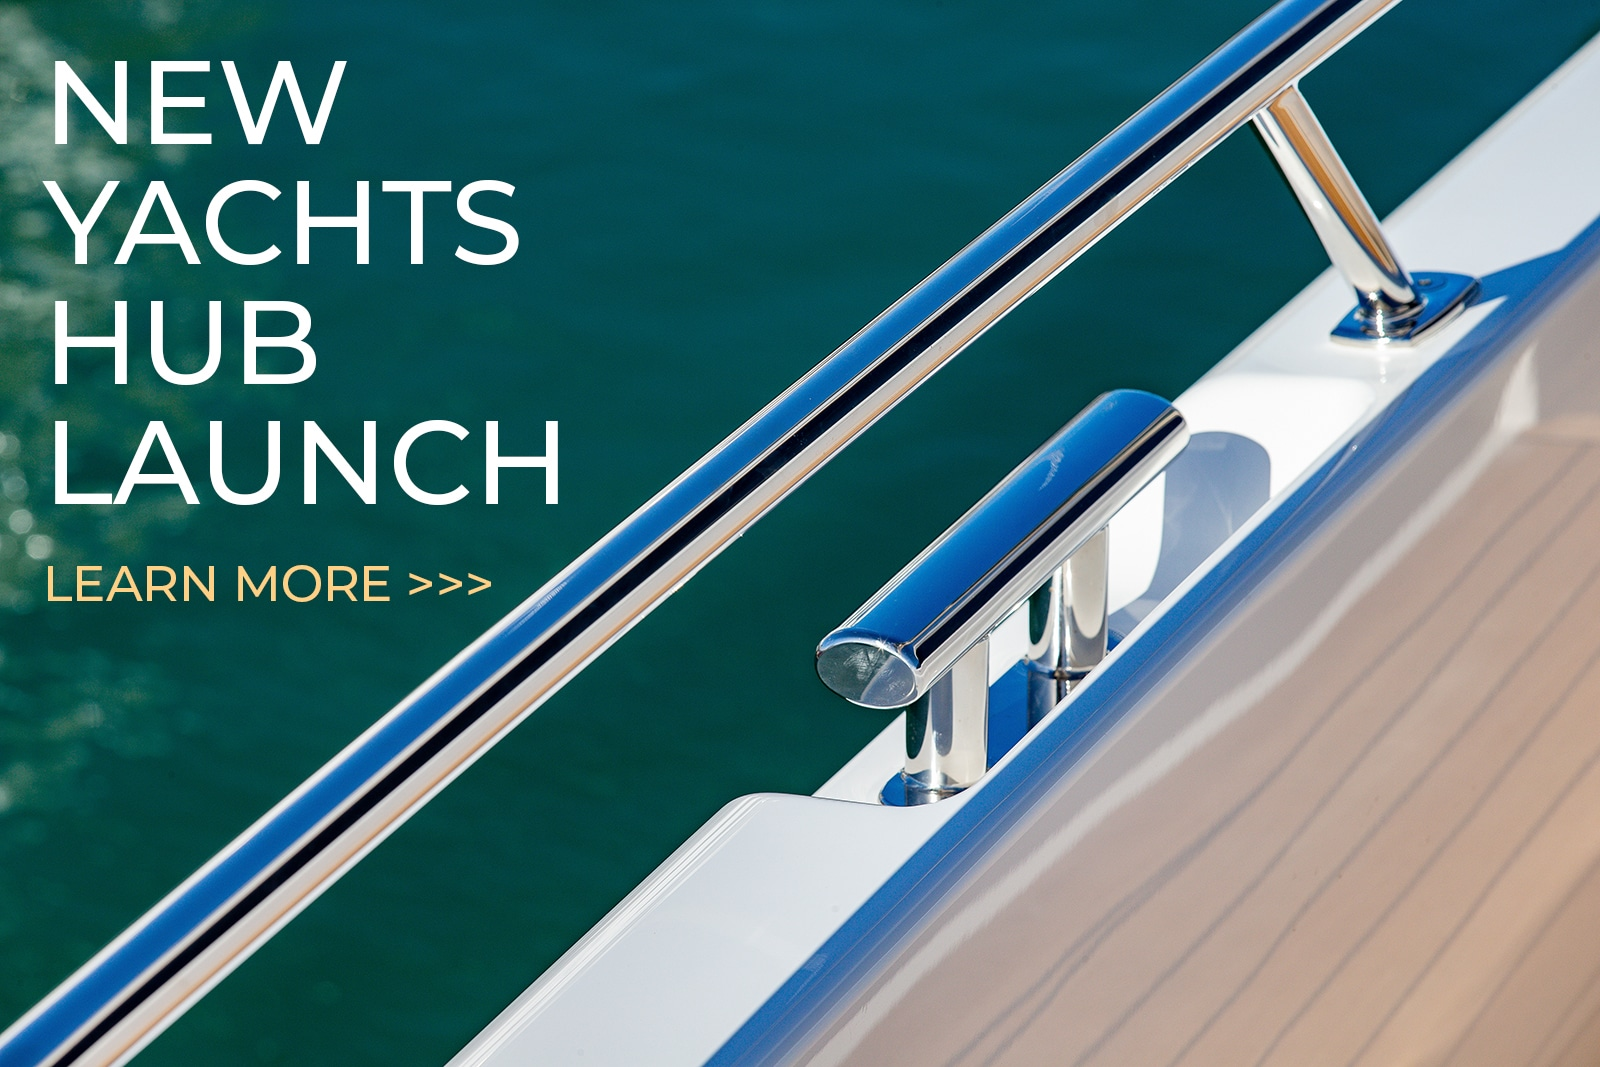 new yachts hub launch